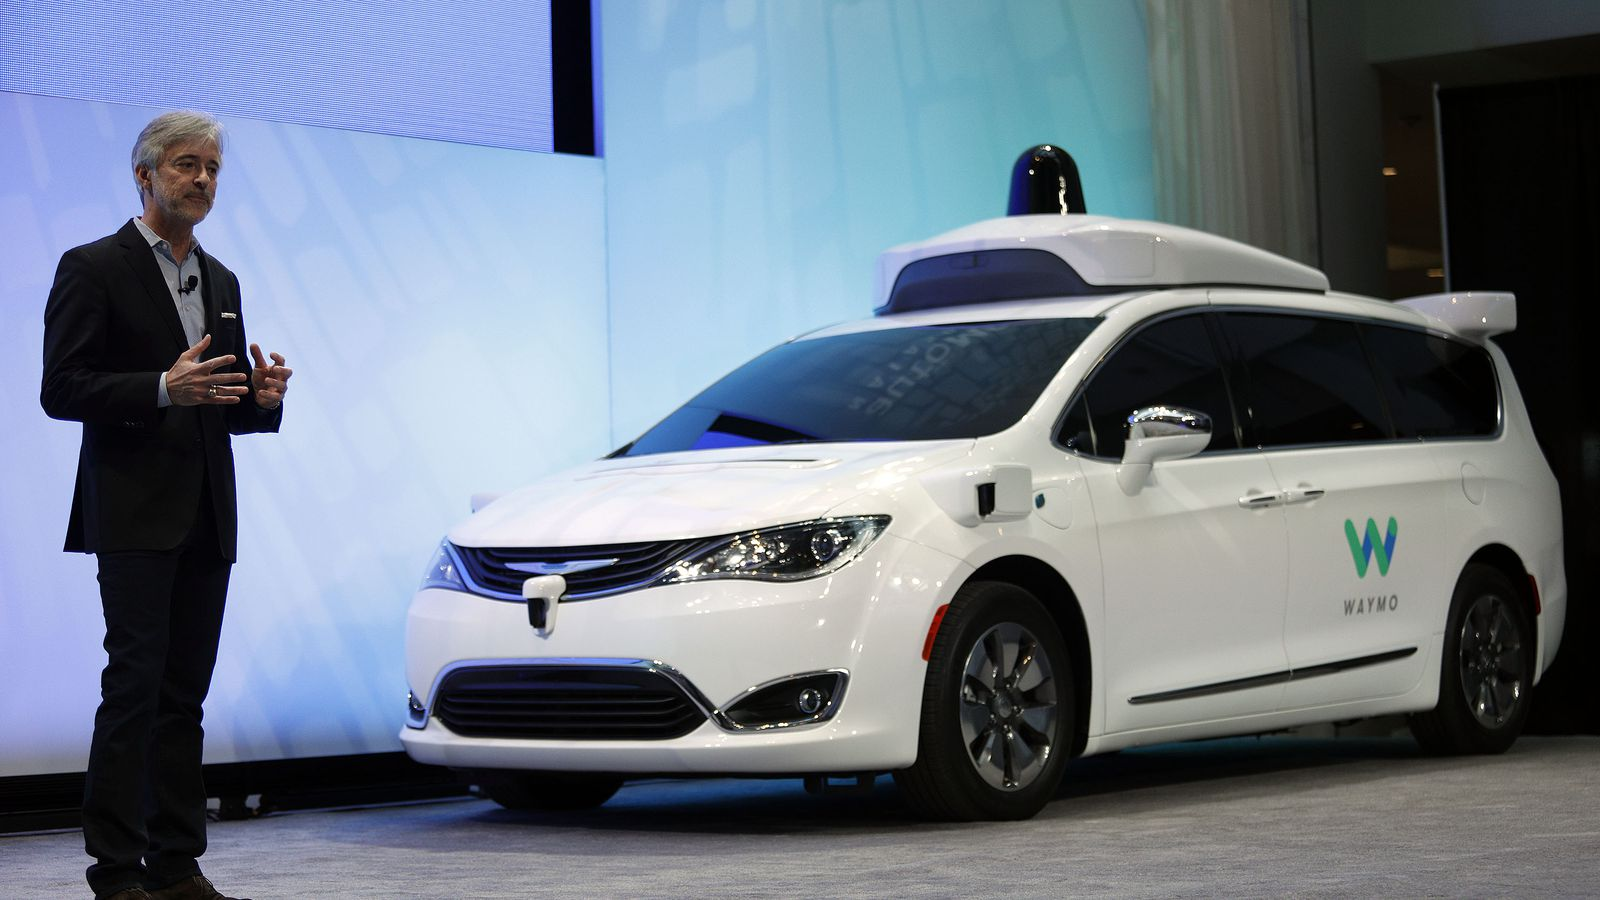 recode.net - Johana Bhuiyan - Alphabet's Waymo is suing Otto and Uber for stealing the design of a key self-driving system